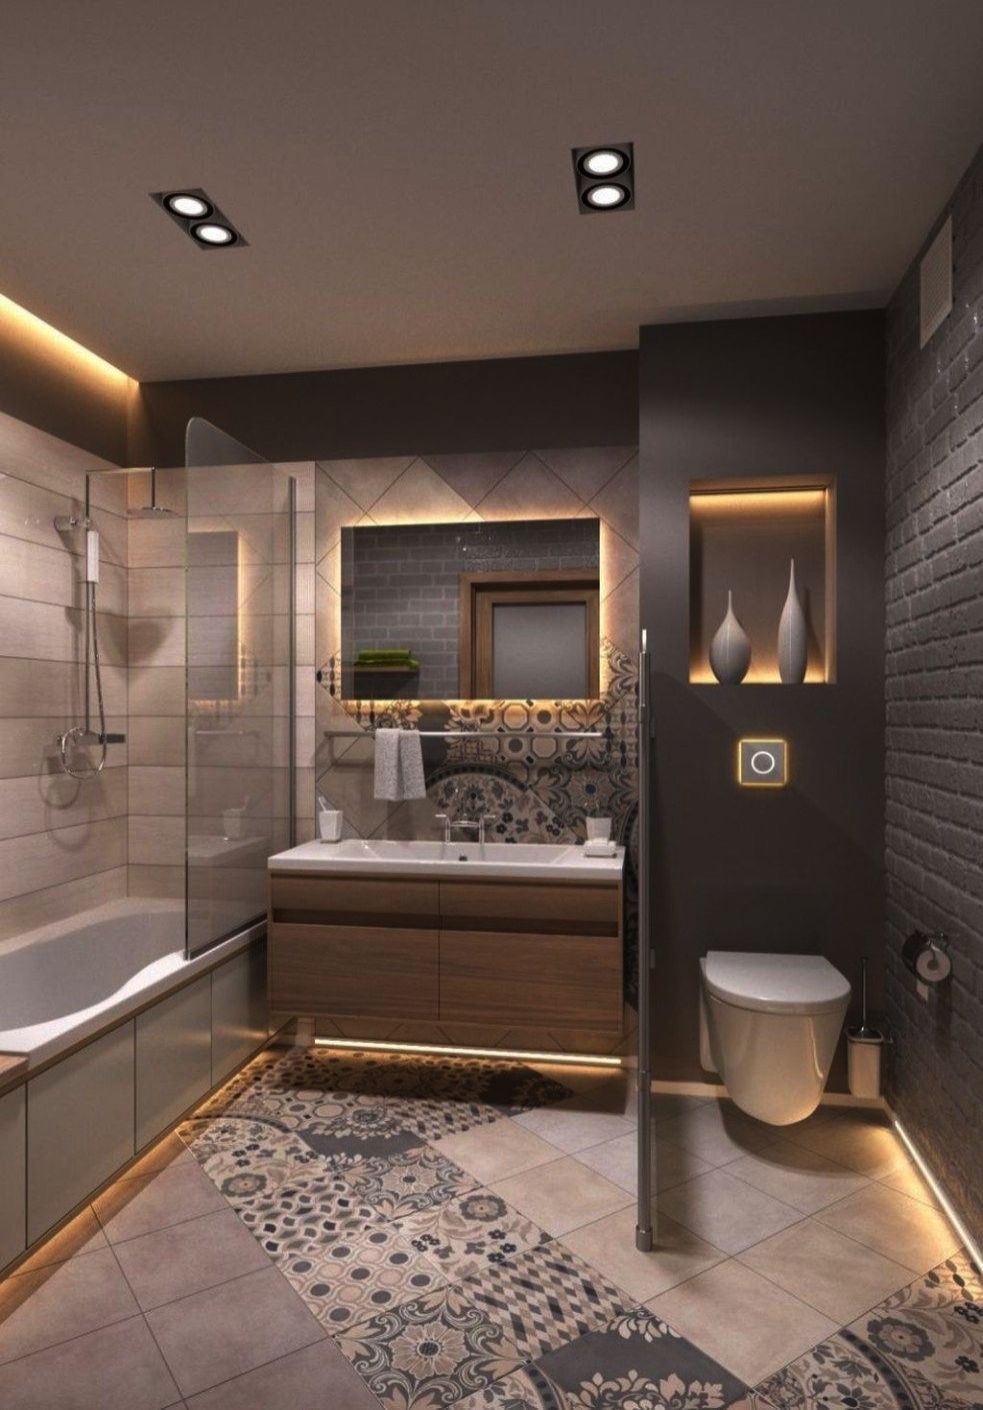 Interior decorating on a small budget interior design ideas for small homes in low budget